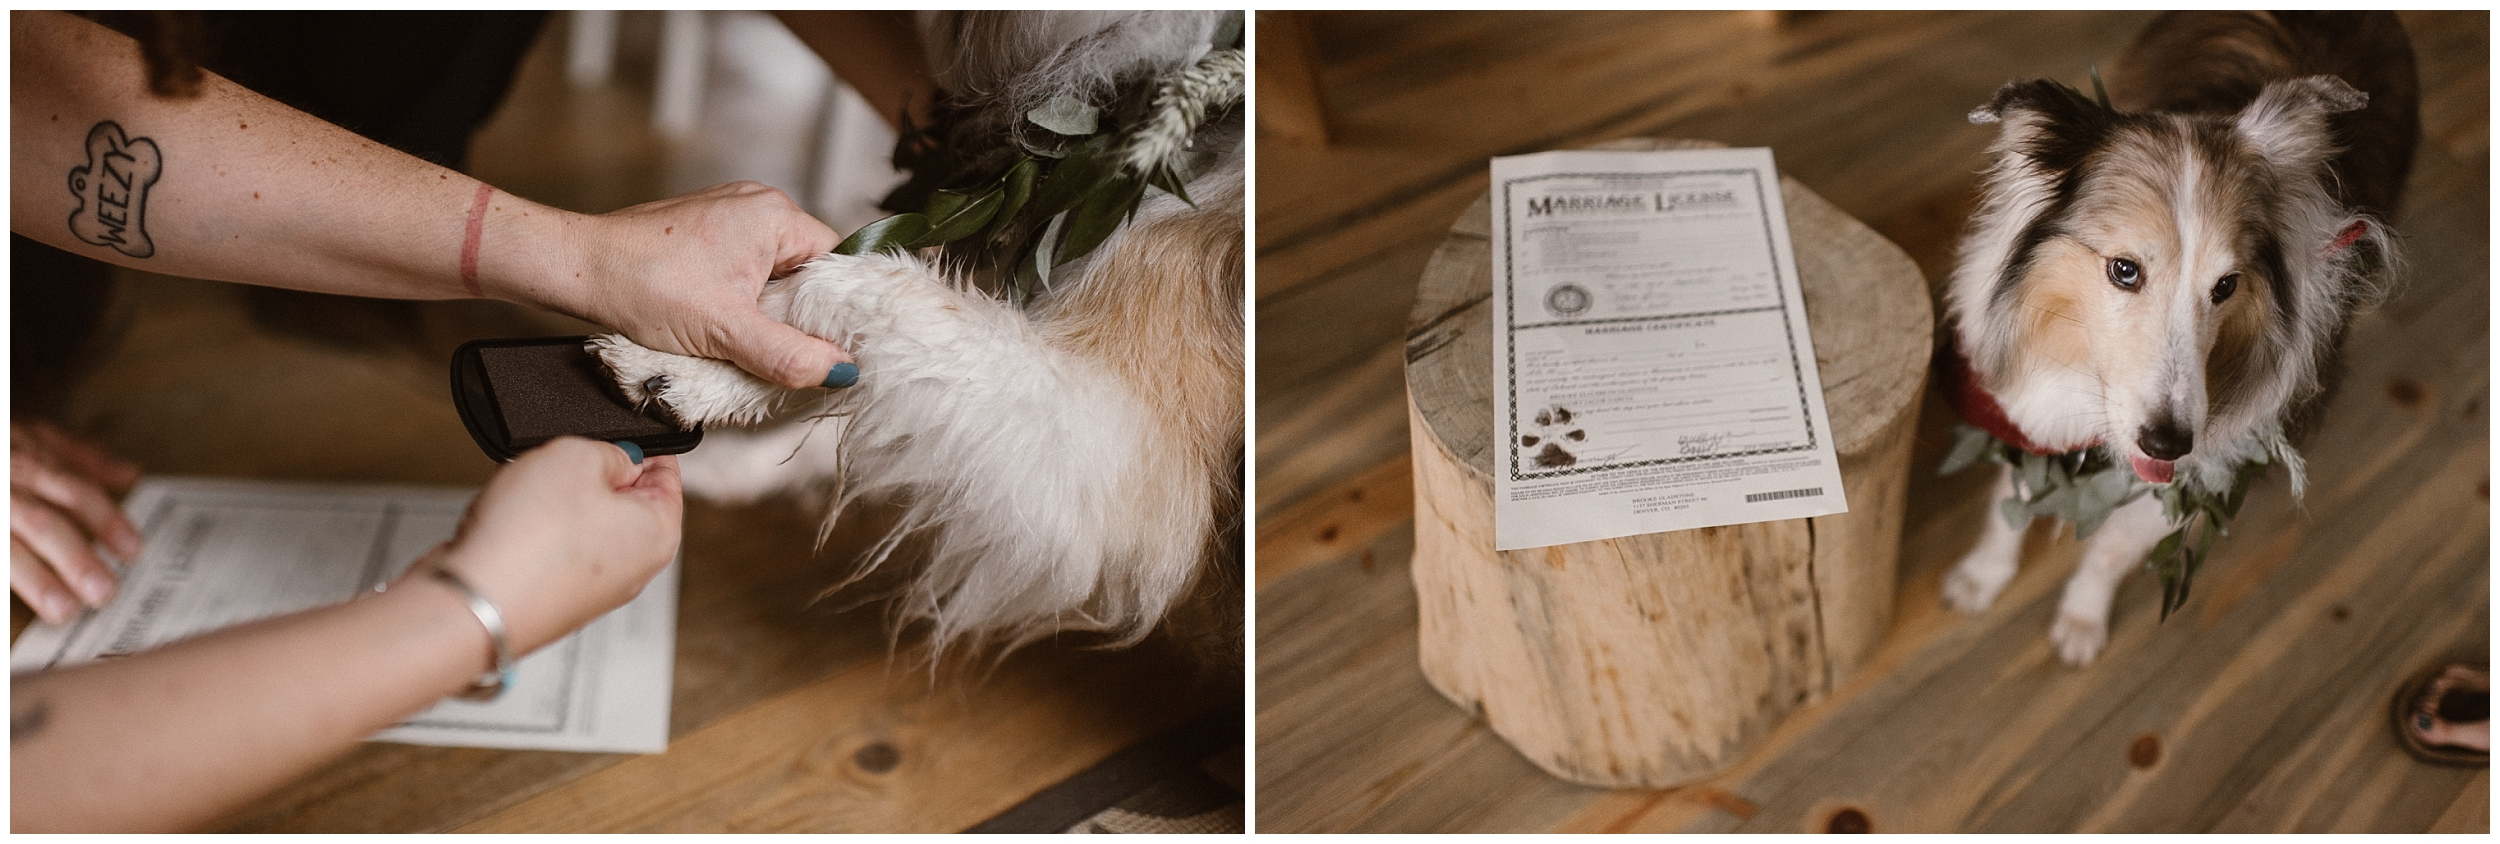 In these side-by-side elopement photos, a pup gets his paw inked so that he can sign the marriage license of his owners. This is one of the unique eloping ideas you can incorporate on how to include your dog in your wedding.